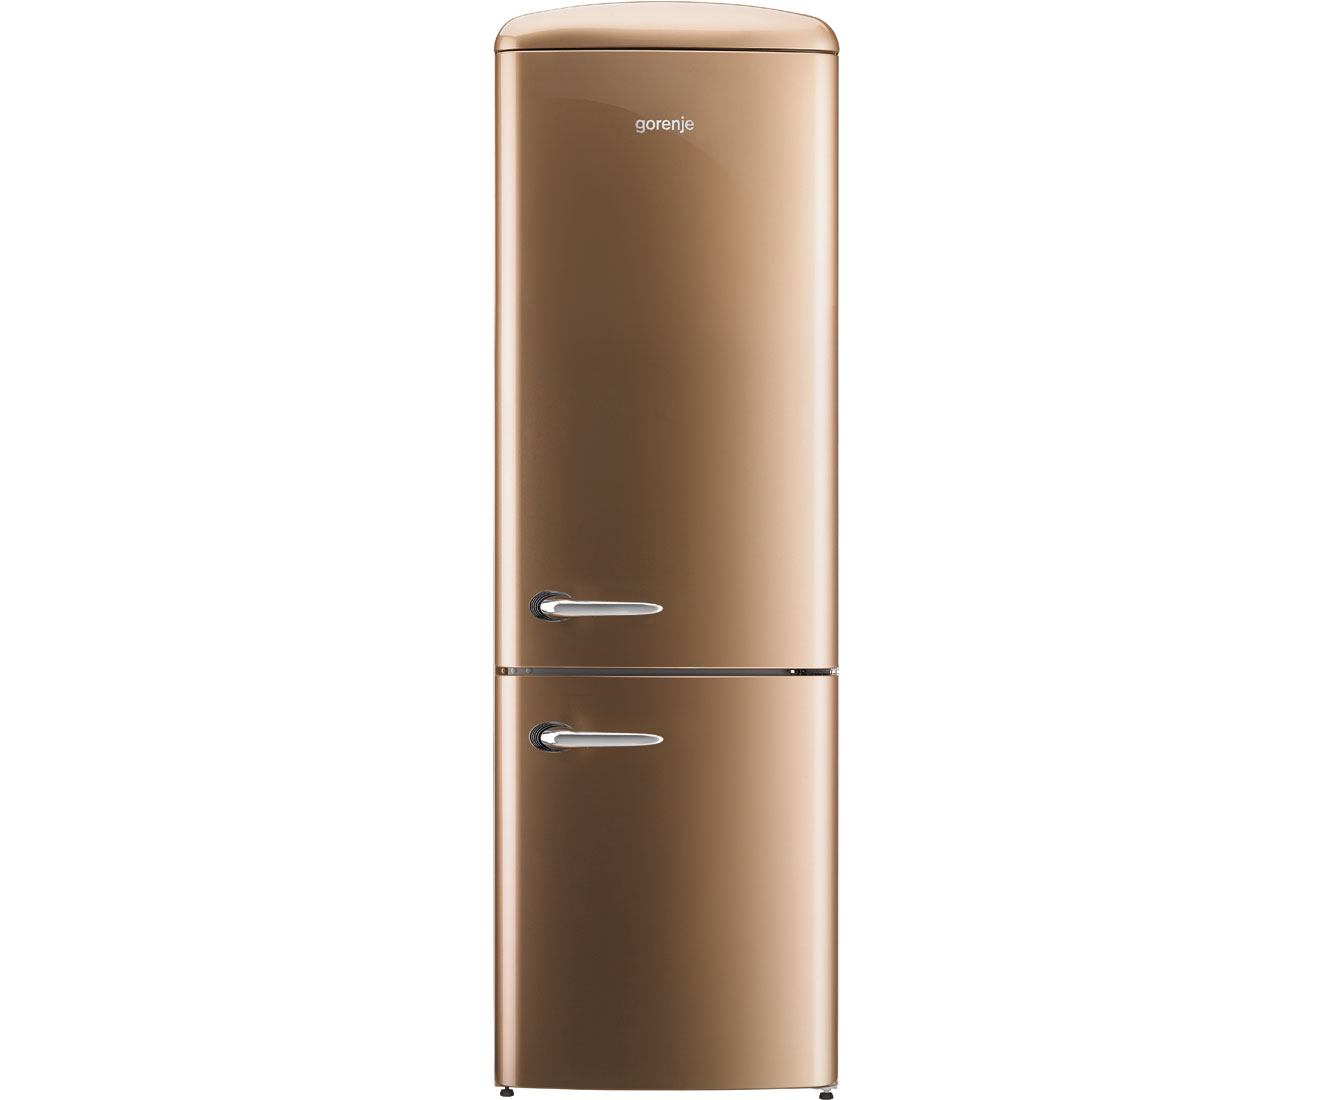 Gorenje Kühlschrank Ork 193 : Gorenje retro collection ork co kühl gefrierkombination er